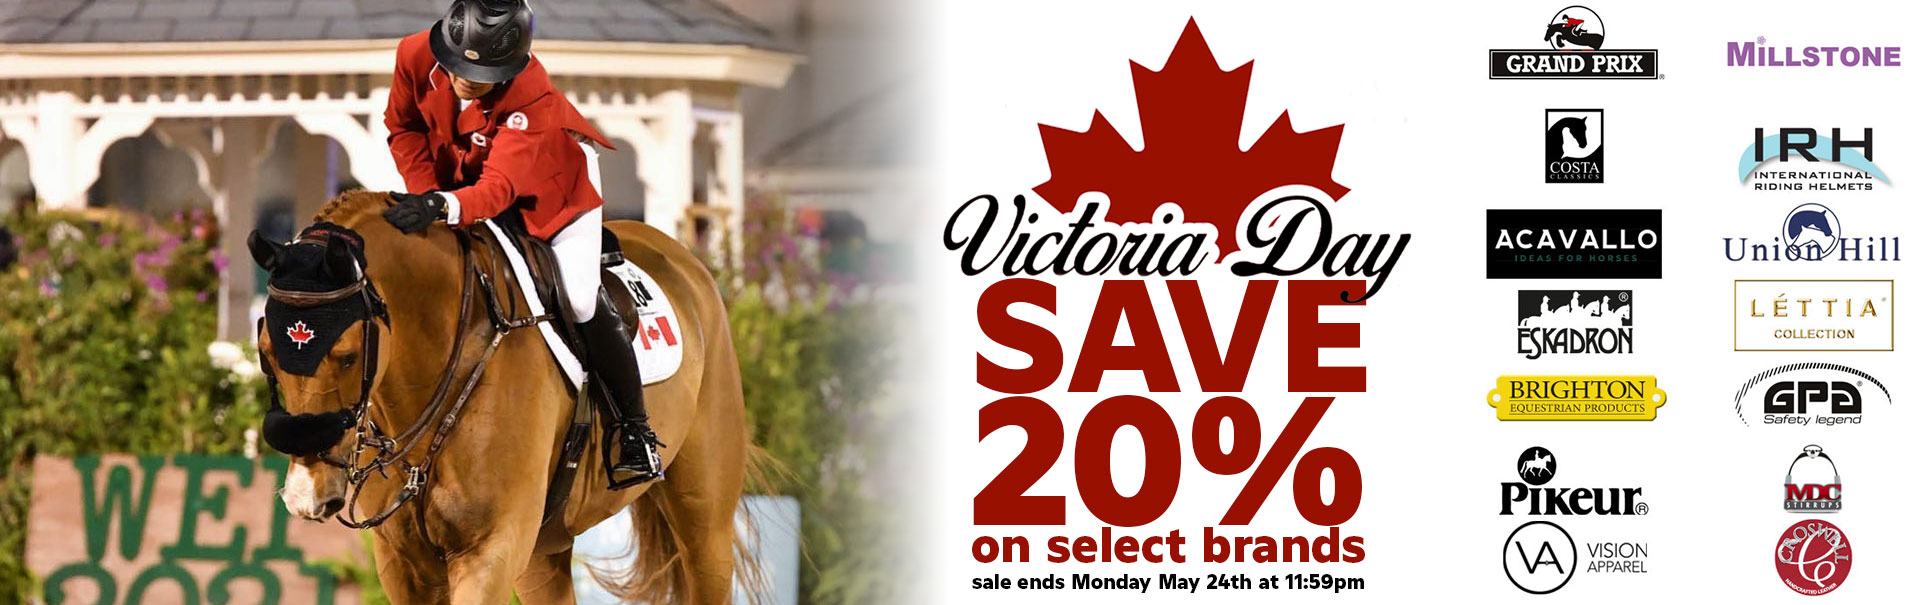 Official Vision Apparel Breeches